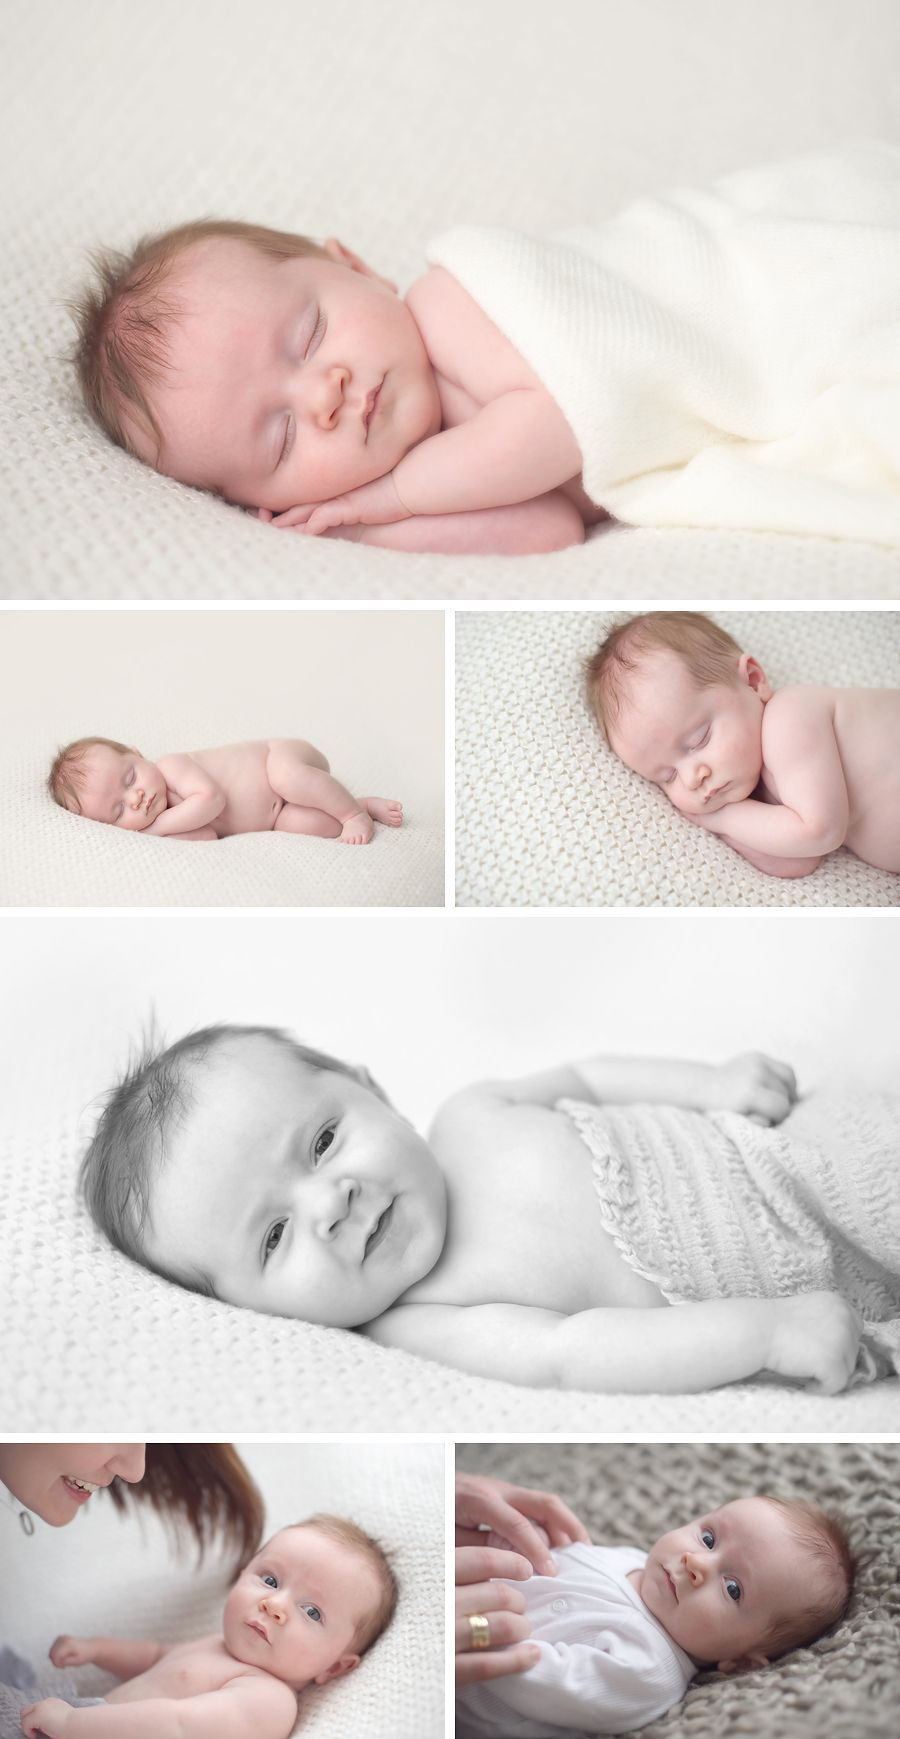 Baby Photography | My future home | Pinterest | Babies, Photography ...